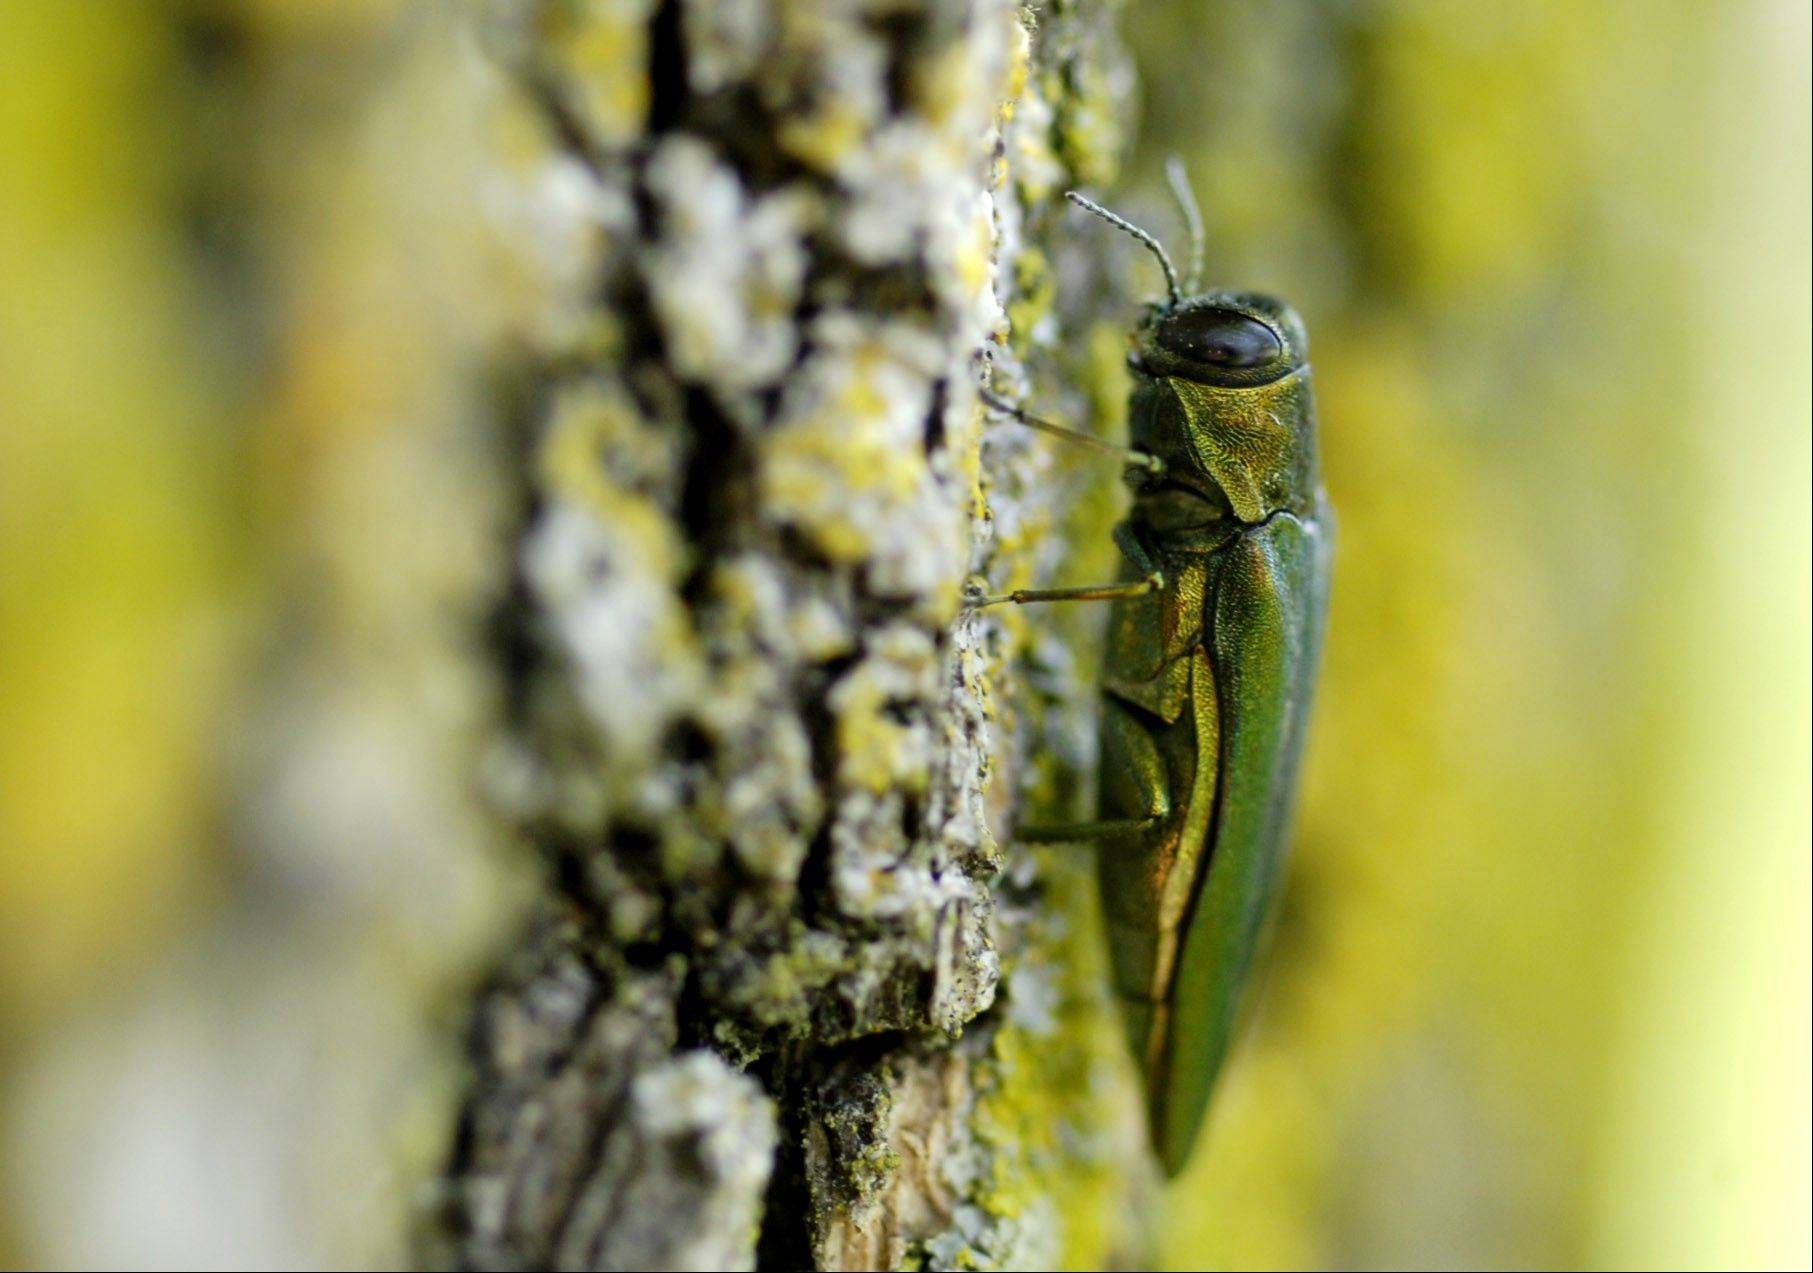 Streamwood officials this month approved contracts totaling more than $400,000 to remove trees infested by the emerald ash borer and plant new trees in their place. The village estimates that about 70 percent of its ash population is infested by the insect.